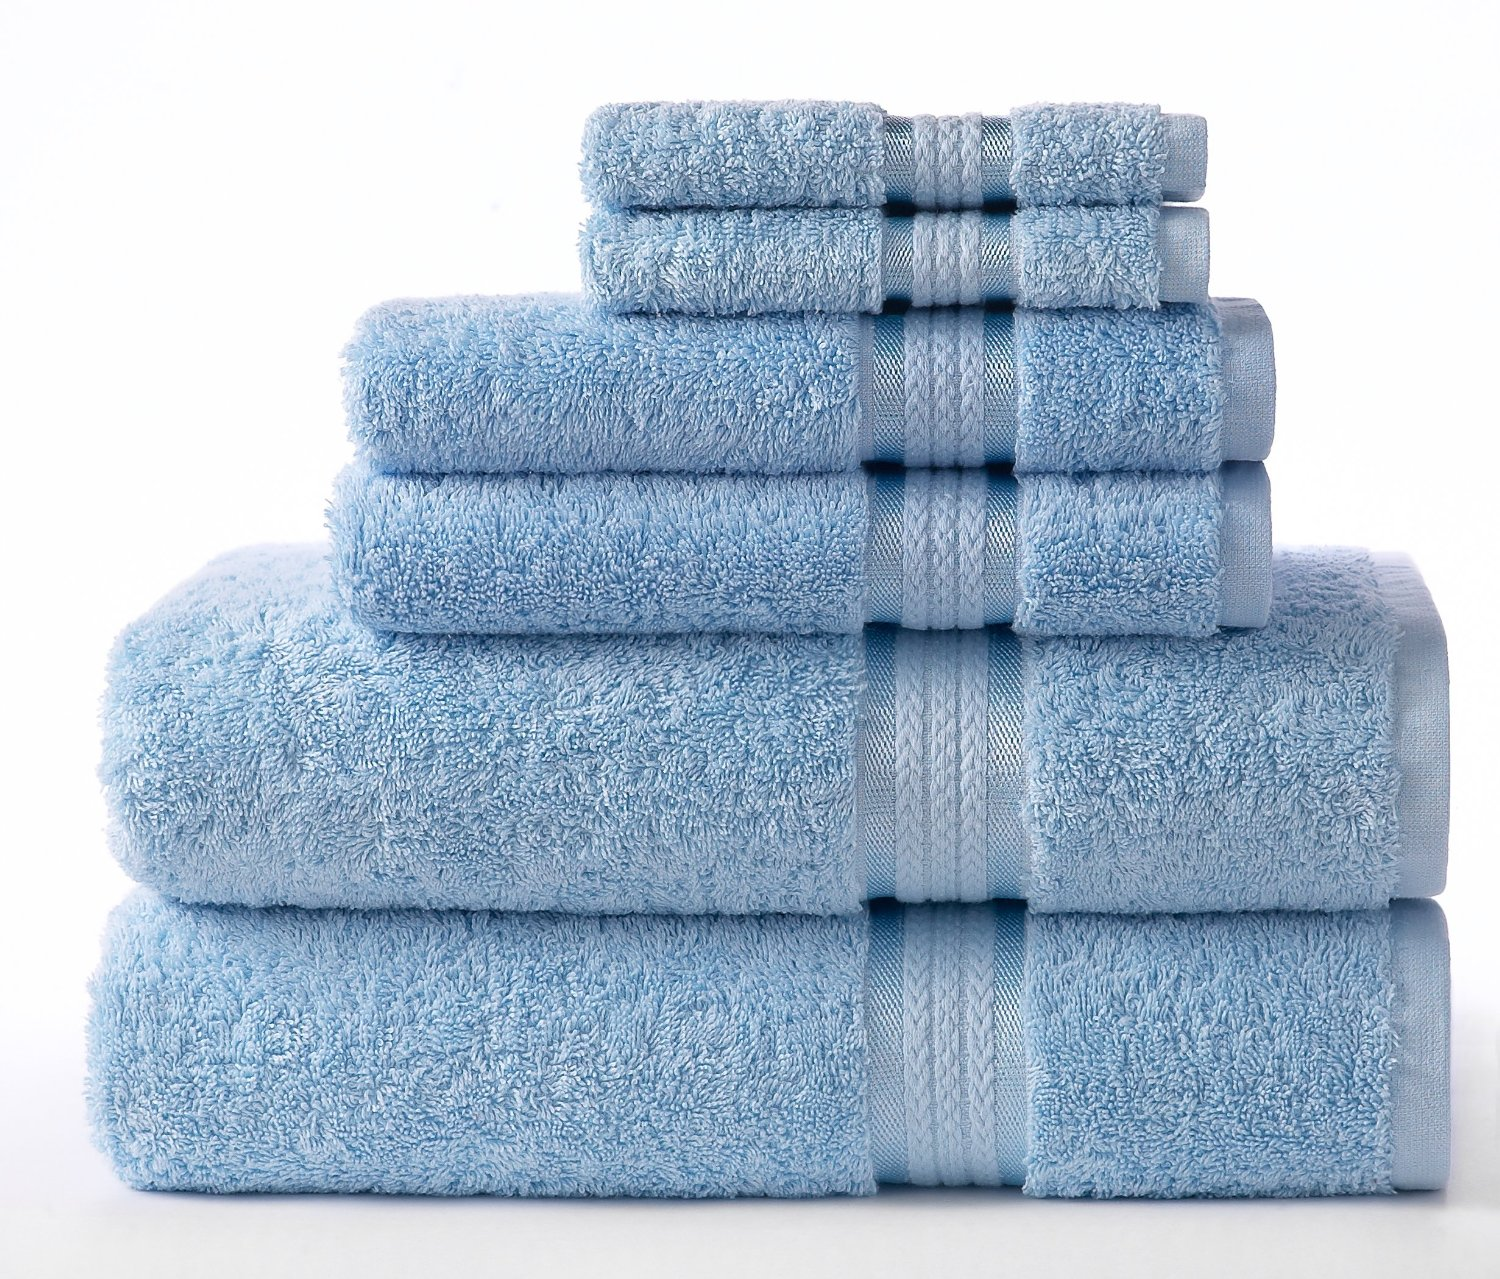 Cotton Craft Ultra Soft 6 Piece Towel Set Light Blue, Luxurious 100% Ringspun Cotton, Heavy Weight & Absorbent, Rayon Trim – 2 Oversized Large Bath Towels 30×54, 2 Hand Towels 16×28, 2 Wash Cloths 12×12 review